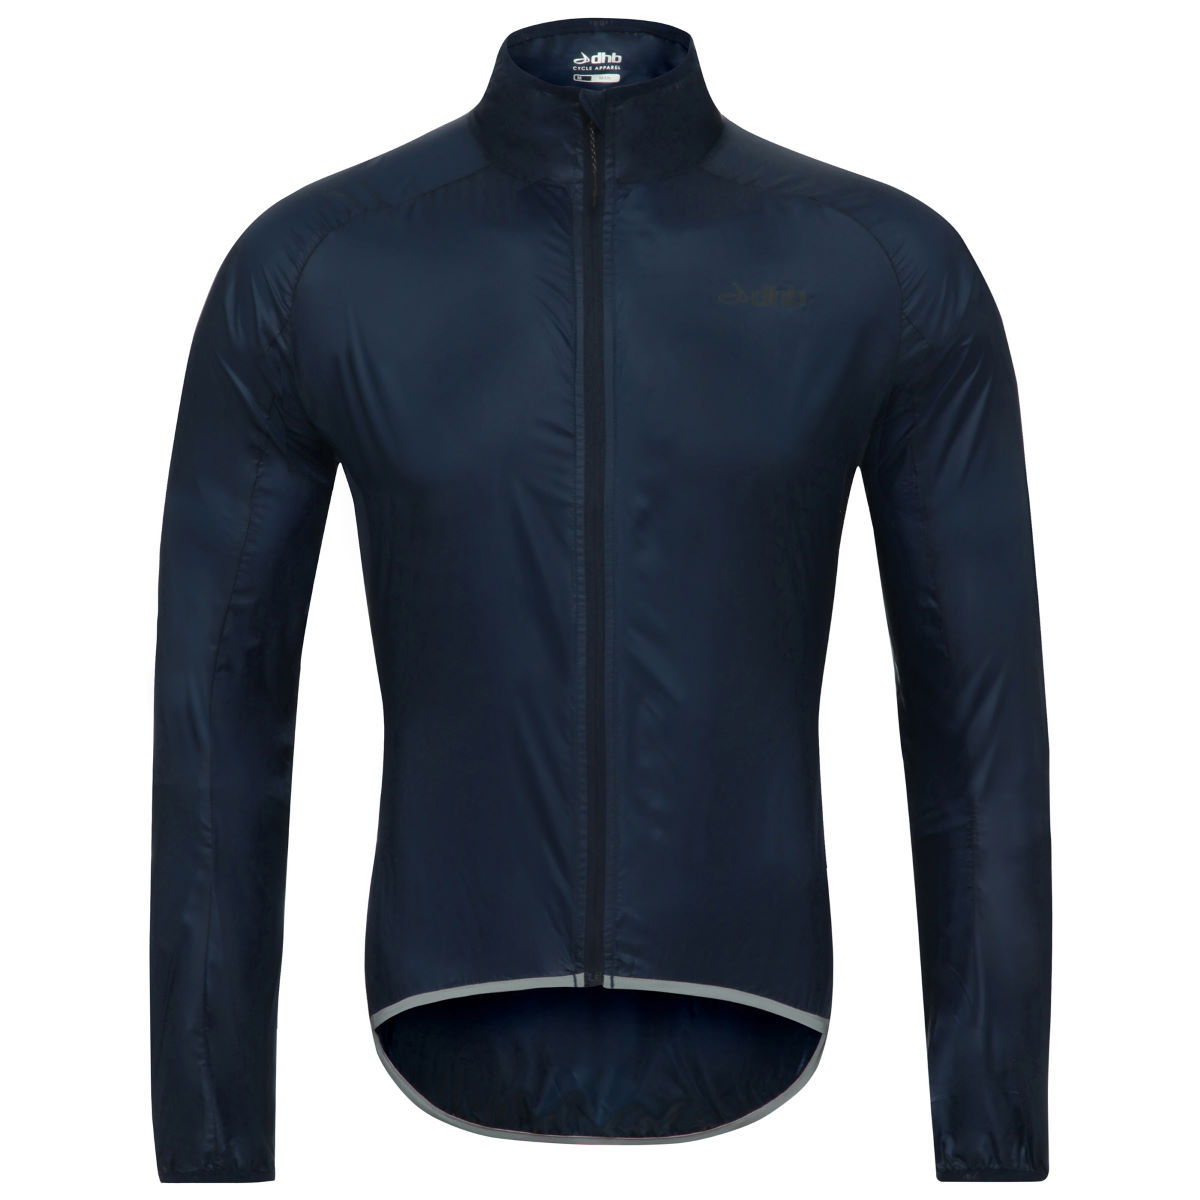 Dhb aeron packable jacket cycling windproof jackets navy aw17 tw0489xl56